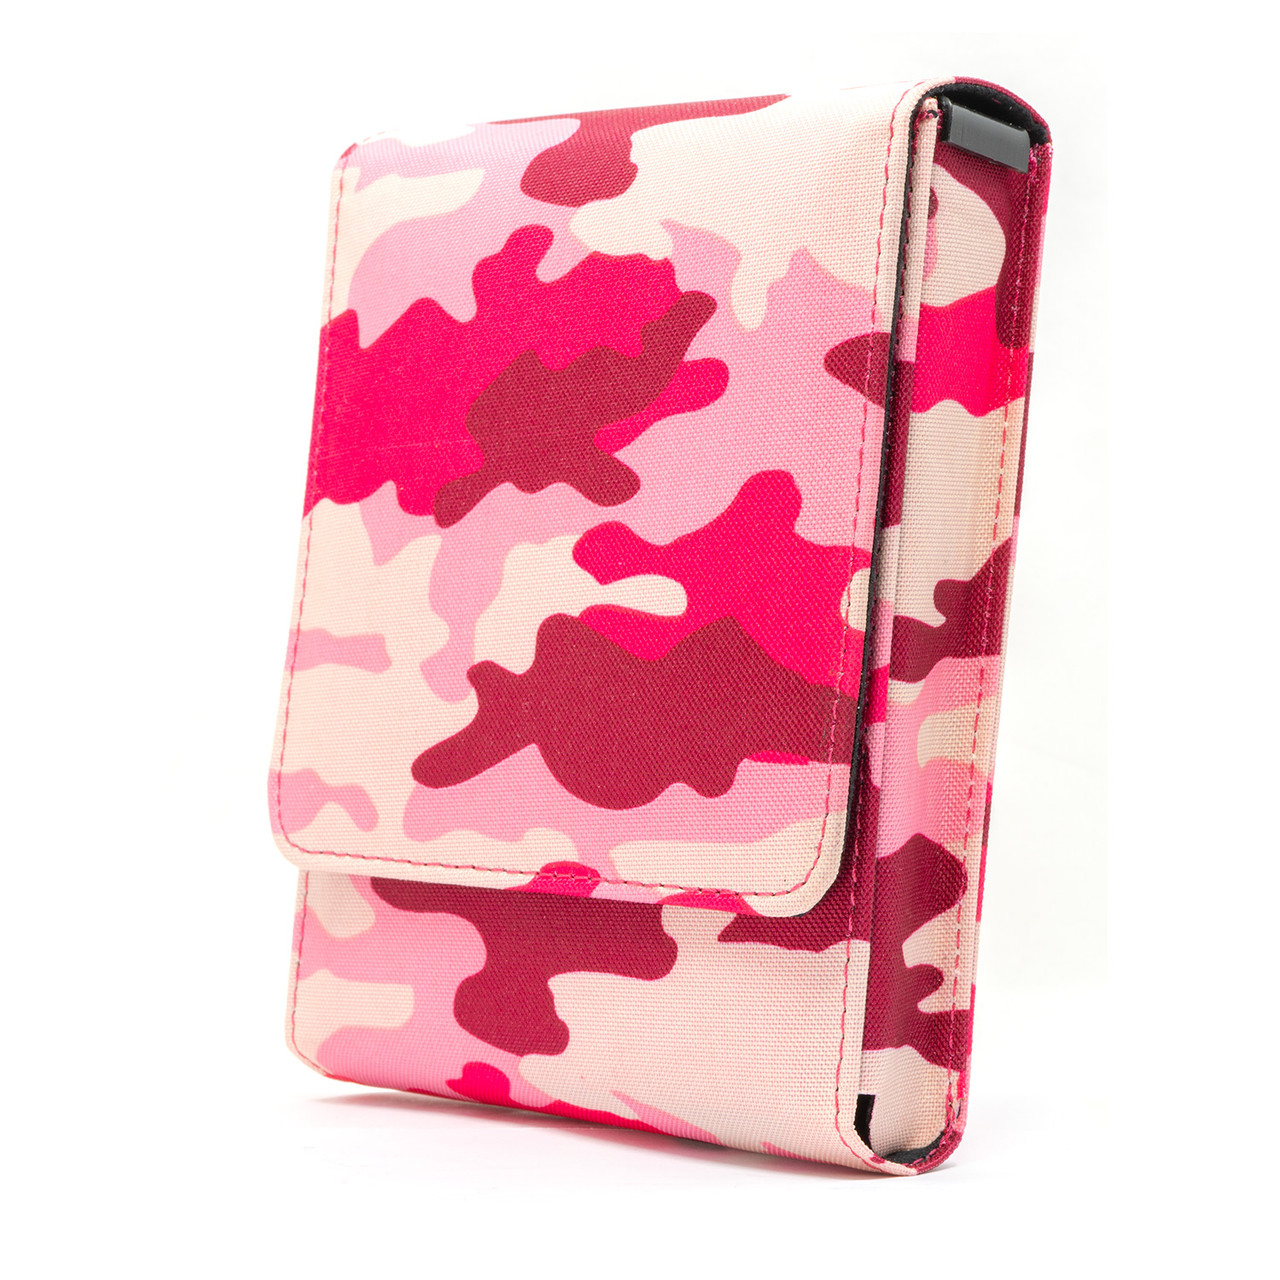 CZ 75 P-01 Pink Camouflage Series Holster